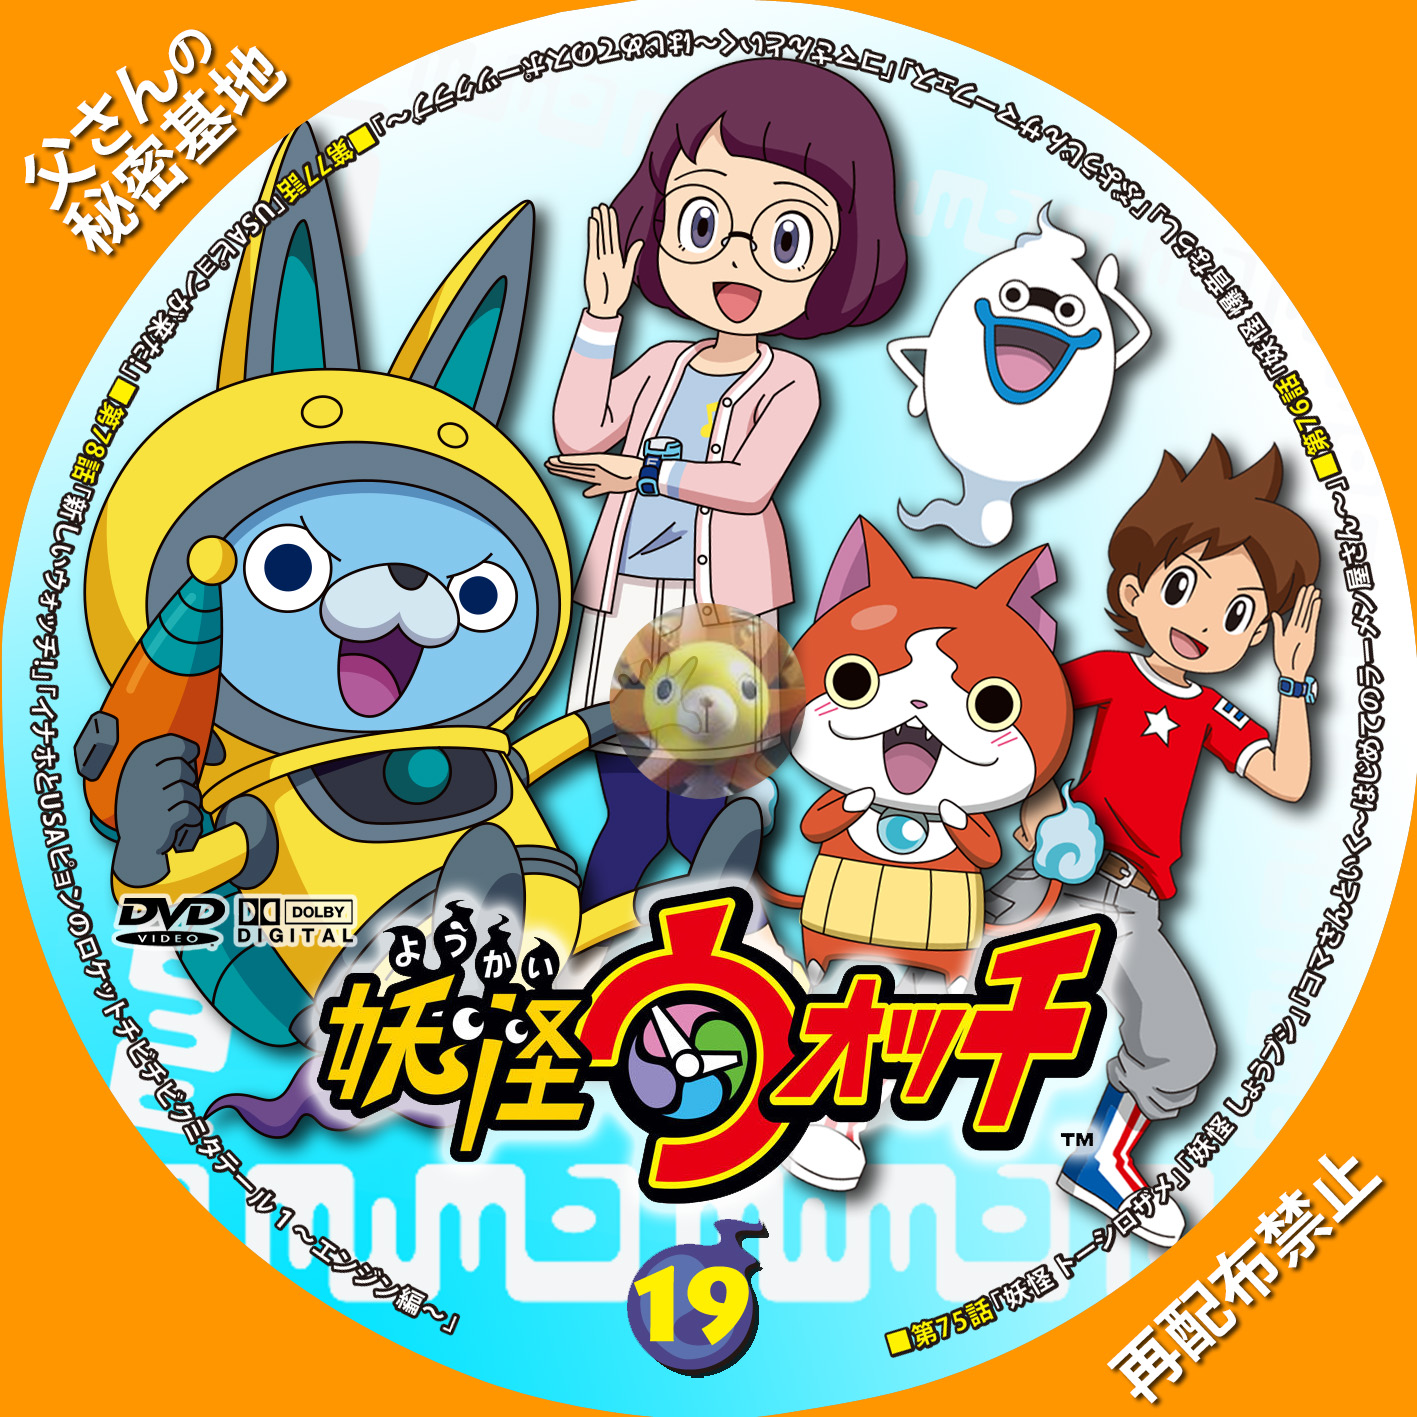 youkai-watch_19DVDa.jpg